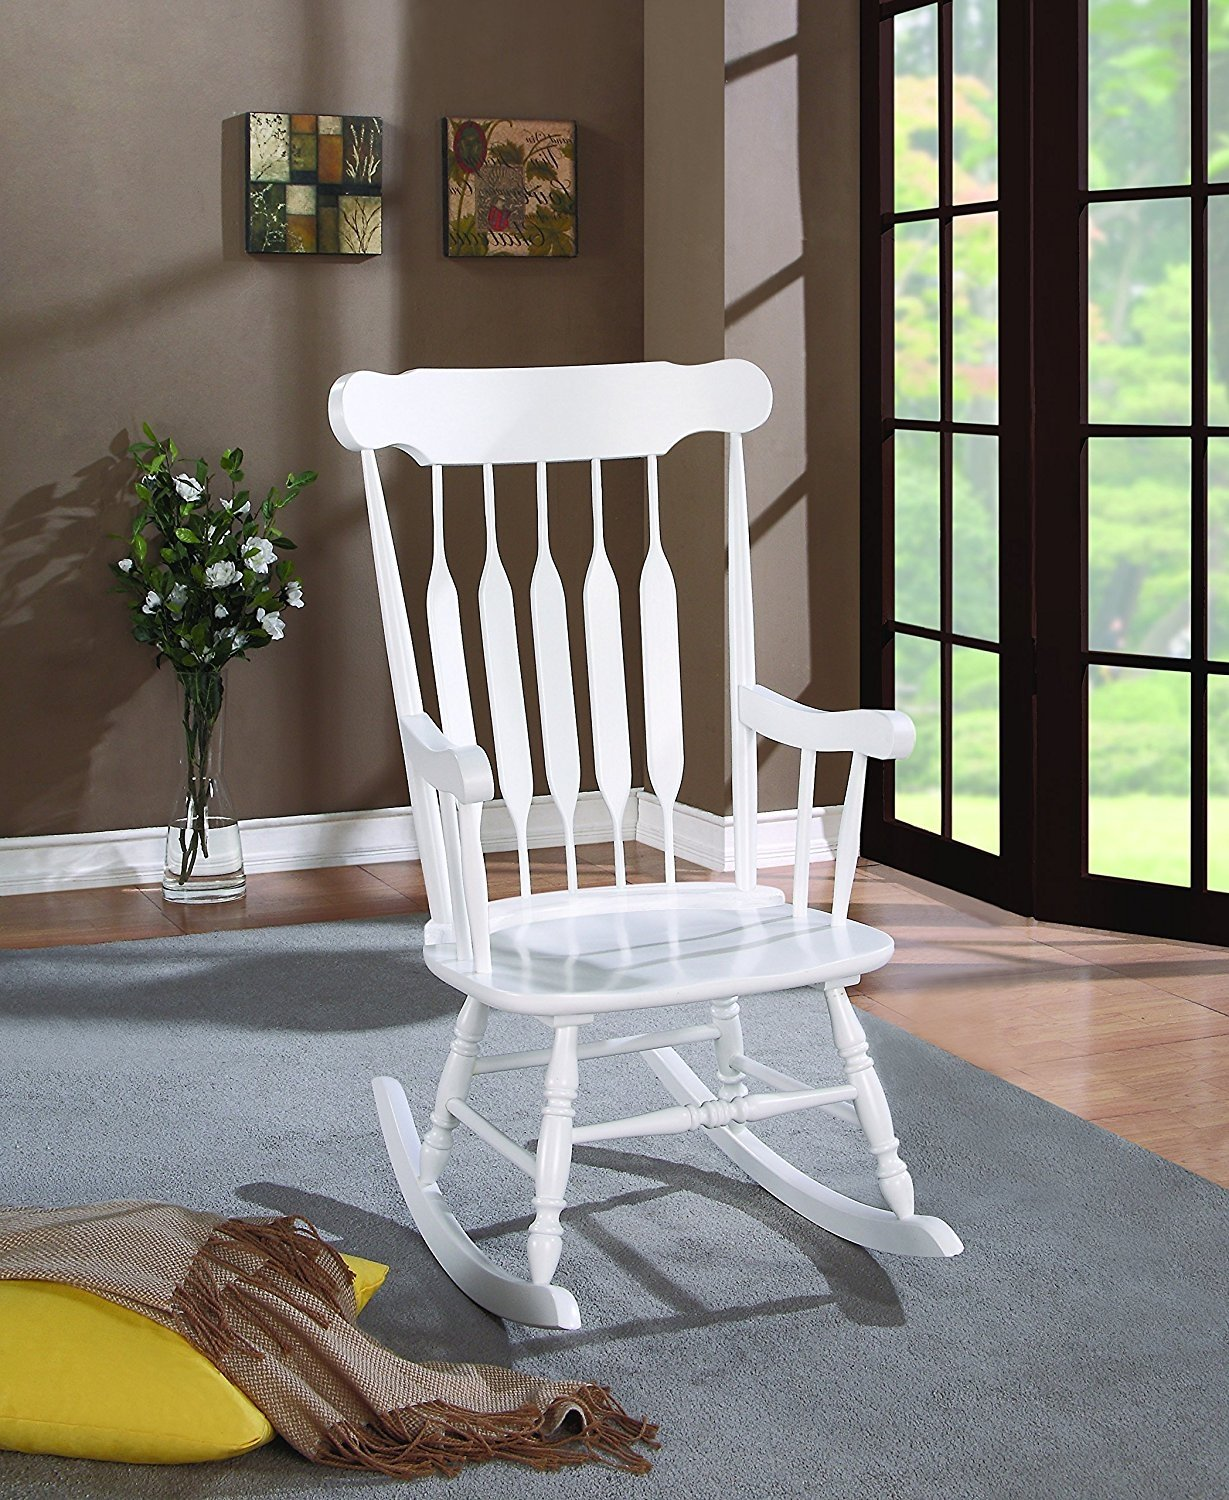 Enjoyable Details About Coaster Marysville Indoor Rocking Chair Gamerscity Chair Design For Home Gamerscityorg